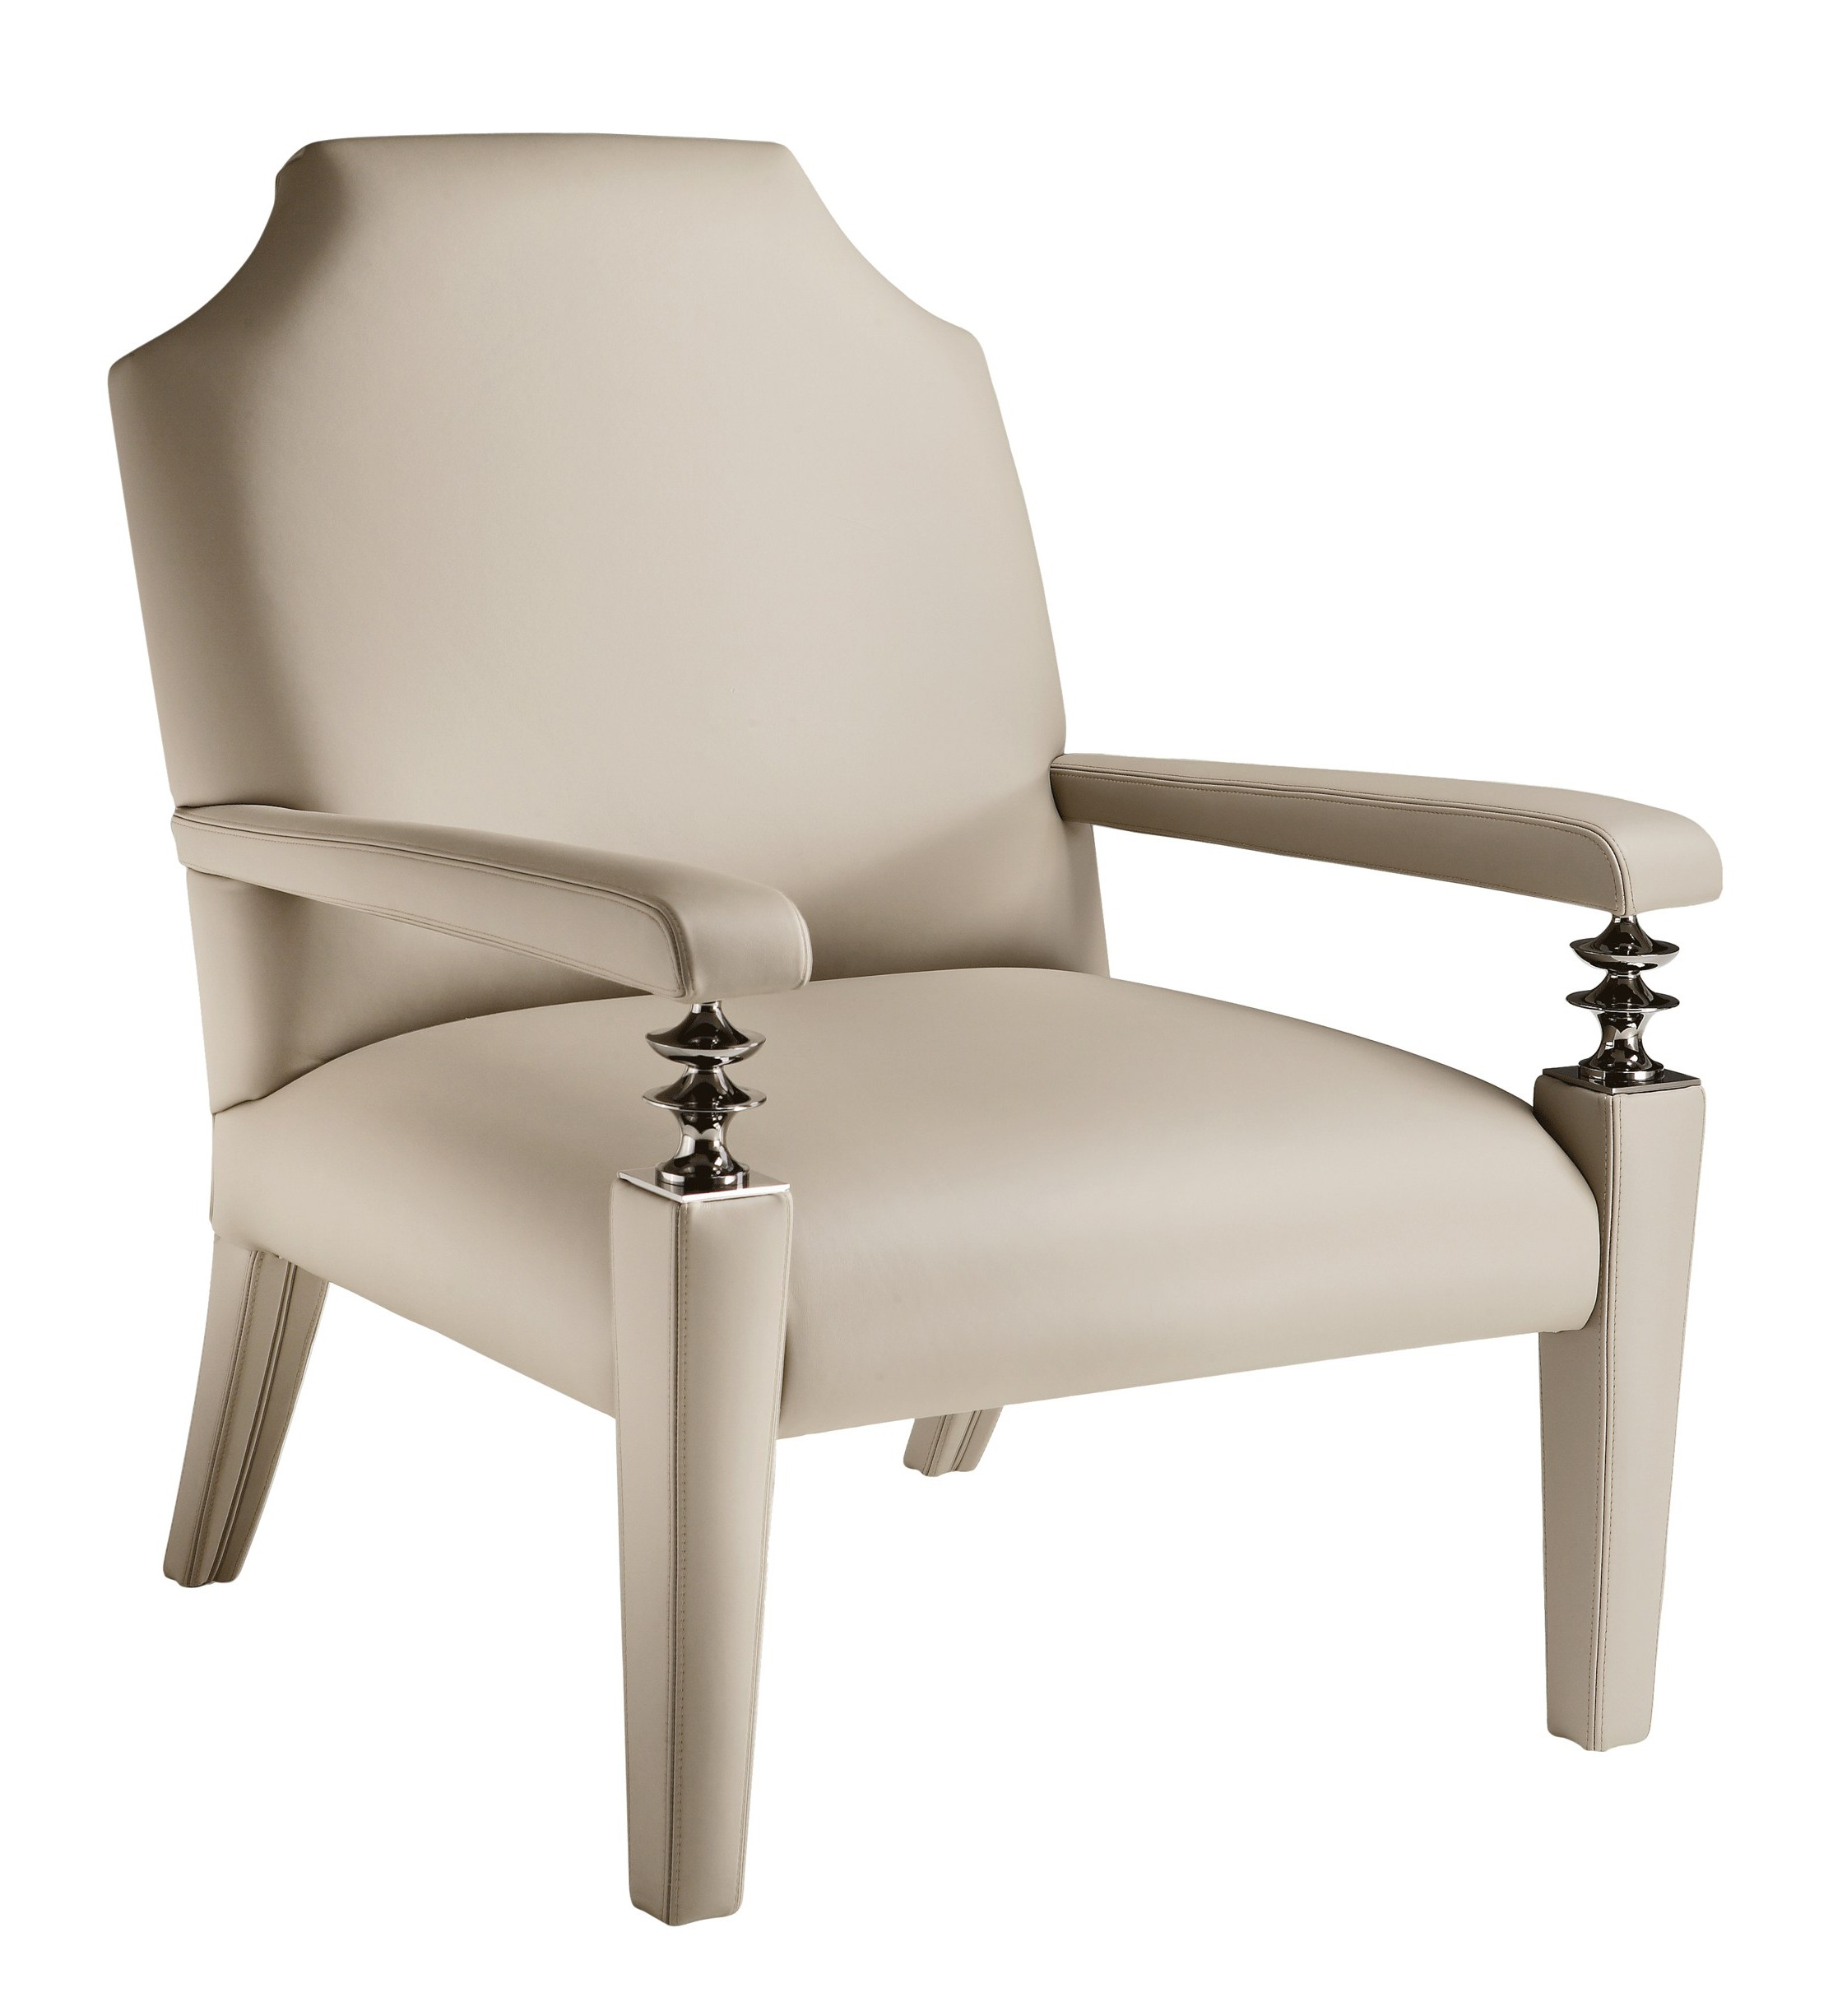 King Chair Sessel King Sessel Von Smania Interiorfinder